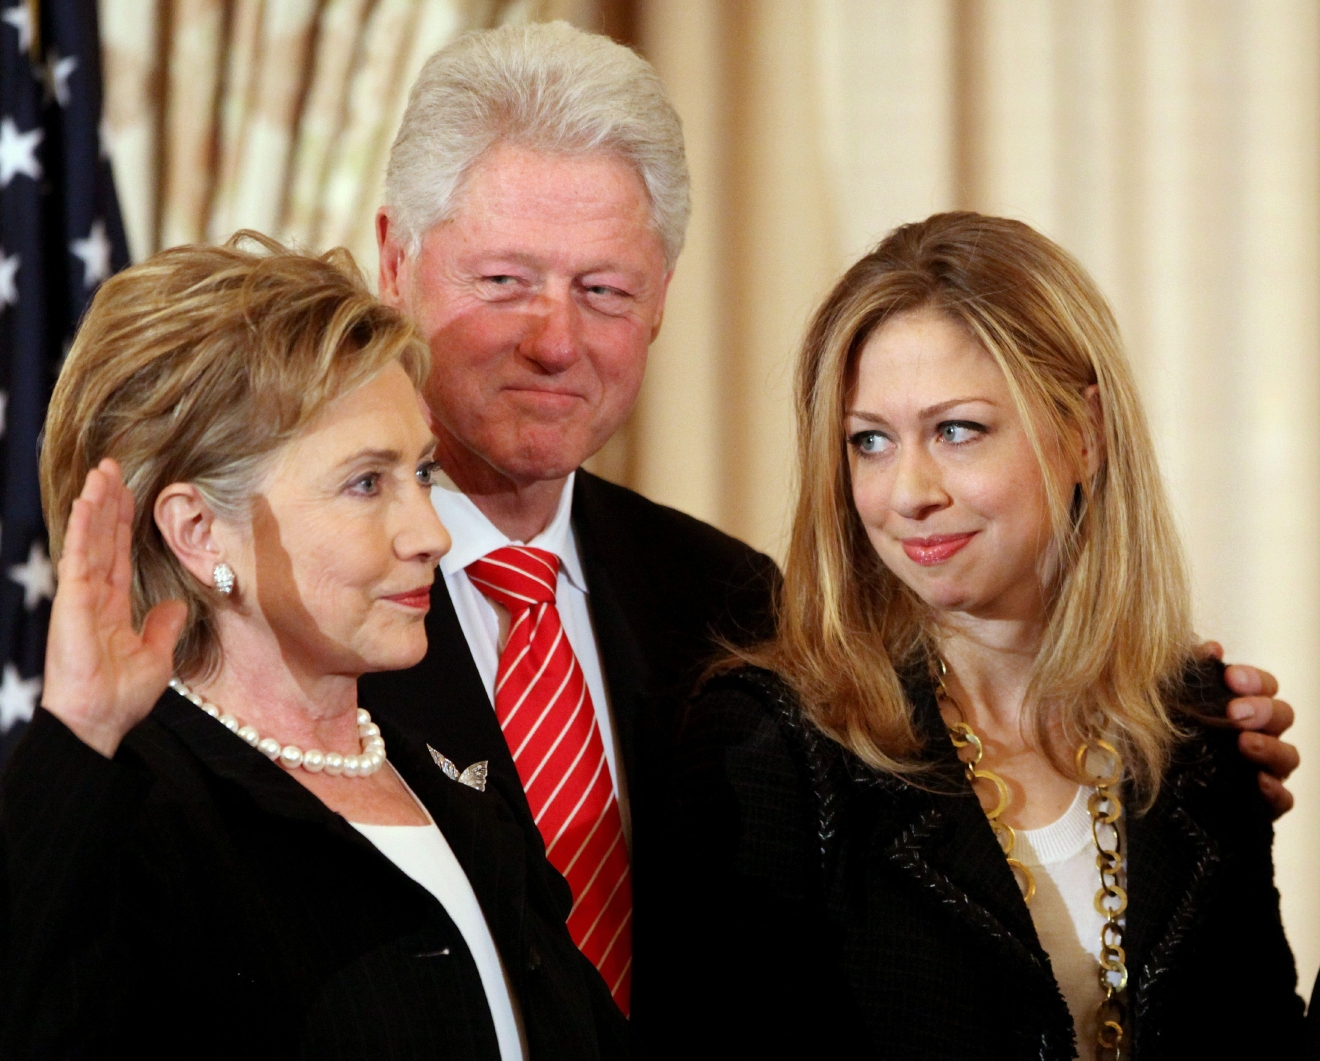 Former President Bill Clinton, center, and daughter Chelsea Clinton, right, look on during a ceremonial swearing-in for Secretary of State Hillary Rodham Clinton, Monday, Feb. 2, 2009, at the State Department in Washington. (AP Photo/Haraz N. Ghanbari)